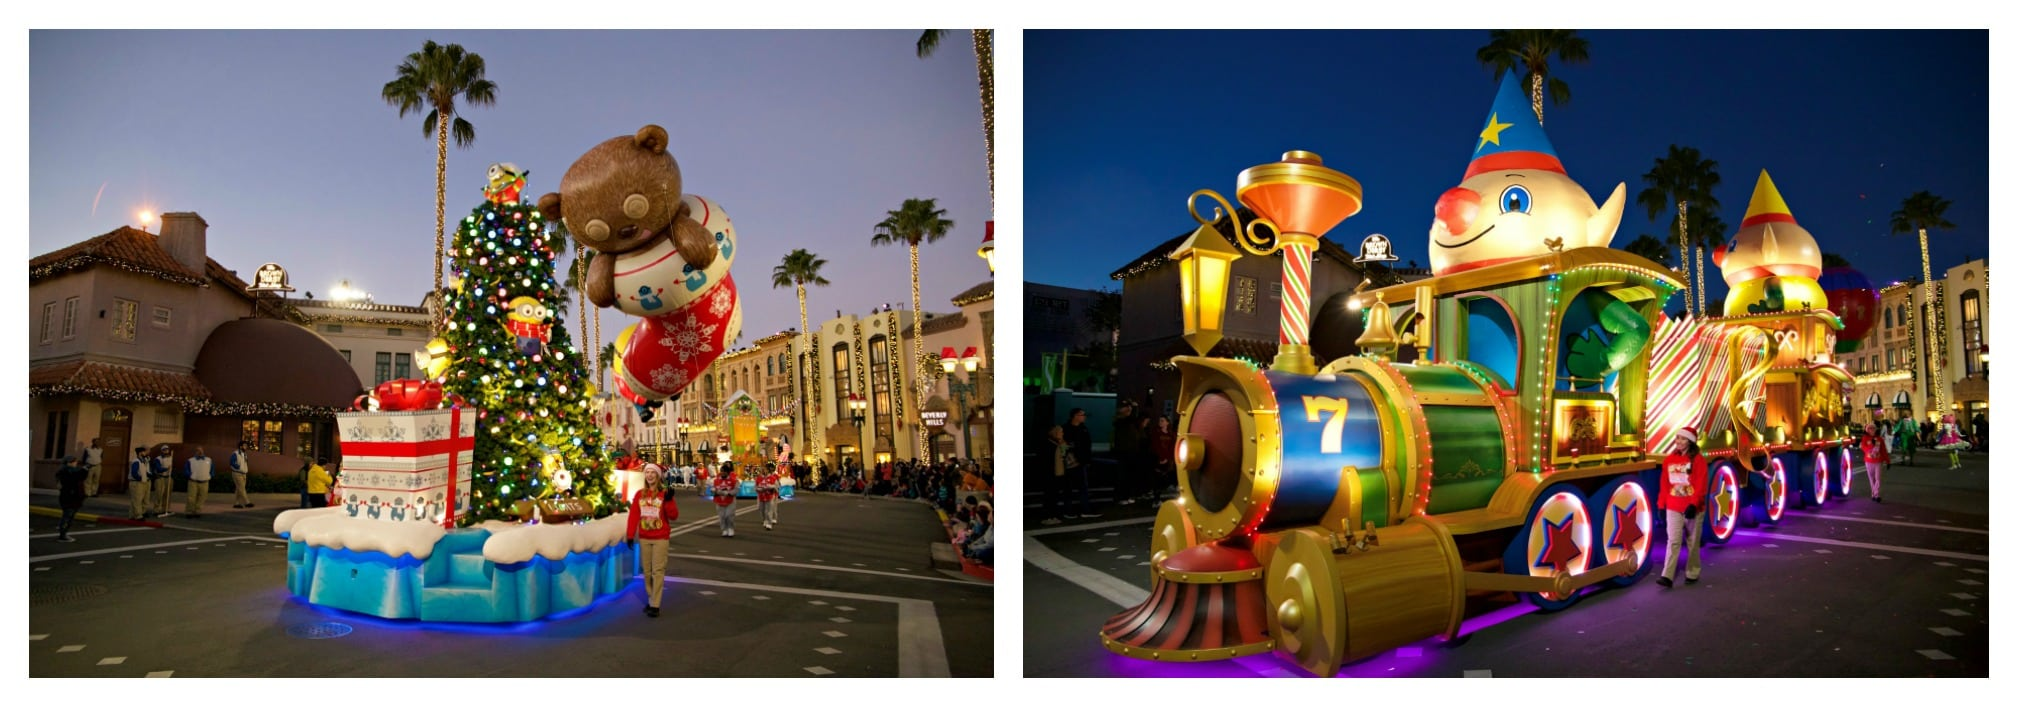 Family Guide To Celebrating the Holidays at Universal Orlando Resort - Holiday Parade